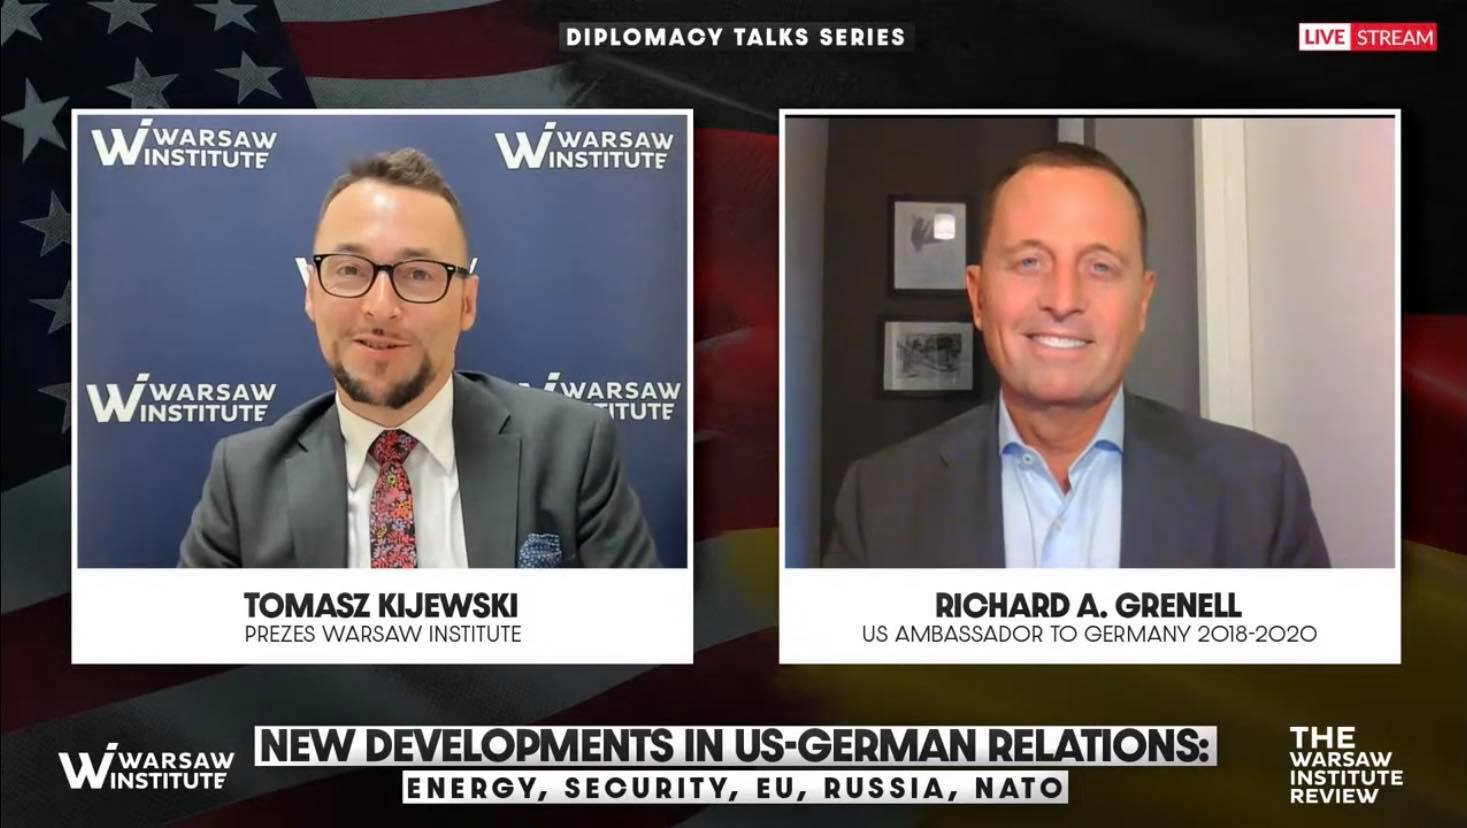 Event Summary: US-German relations – their past, present, and future: energy, security, EU, Russia, NATO | Diplomacy Talks Series